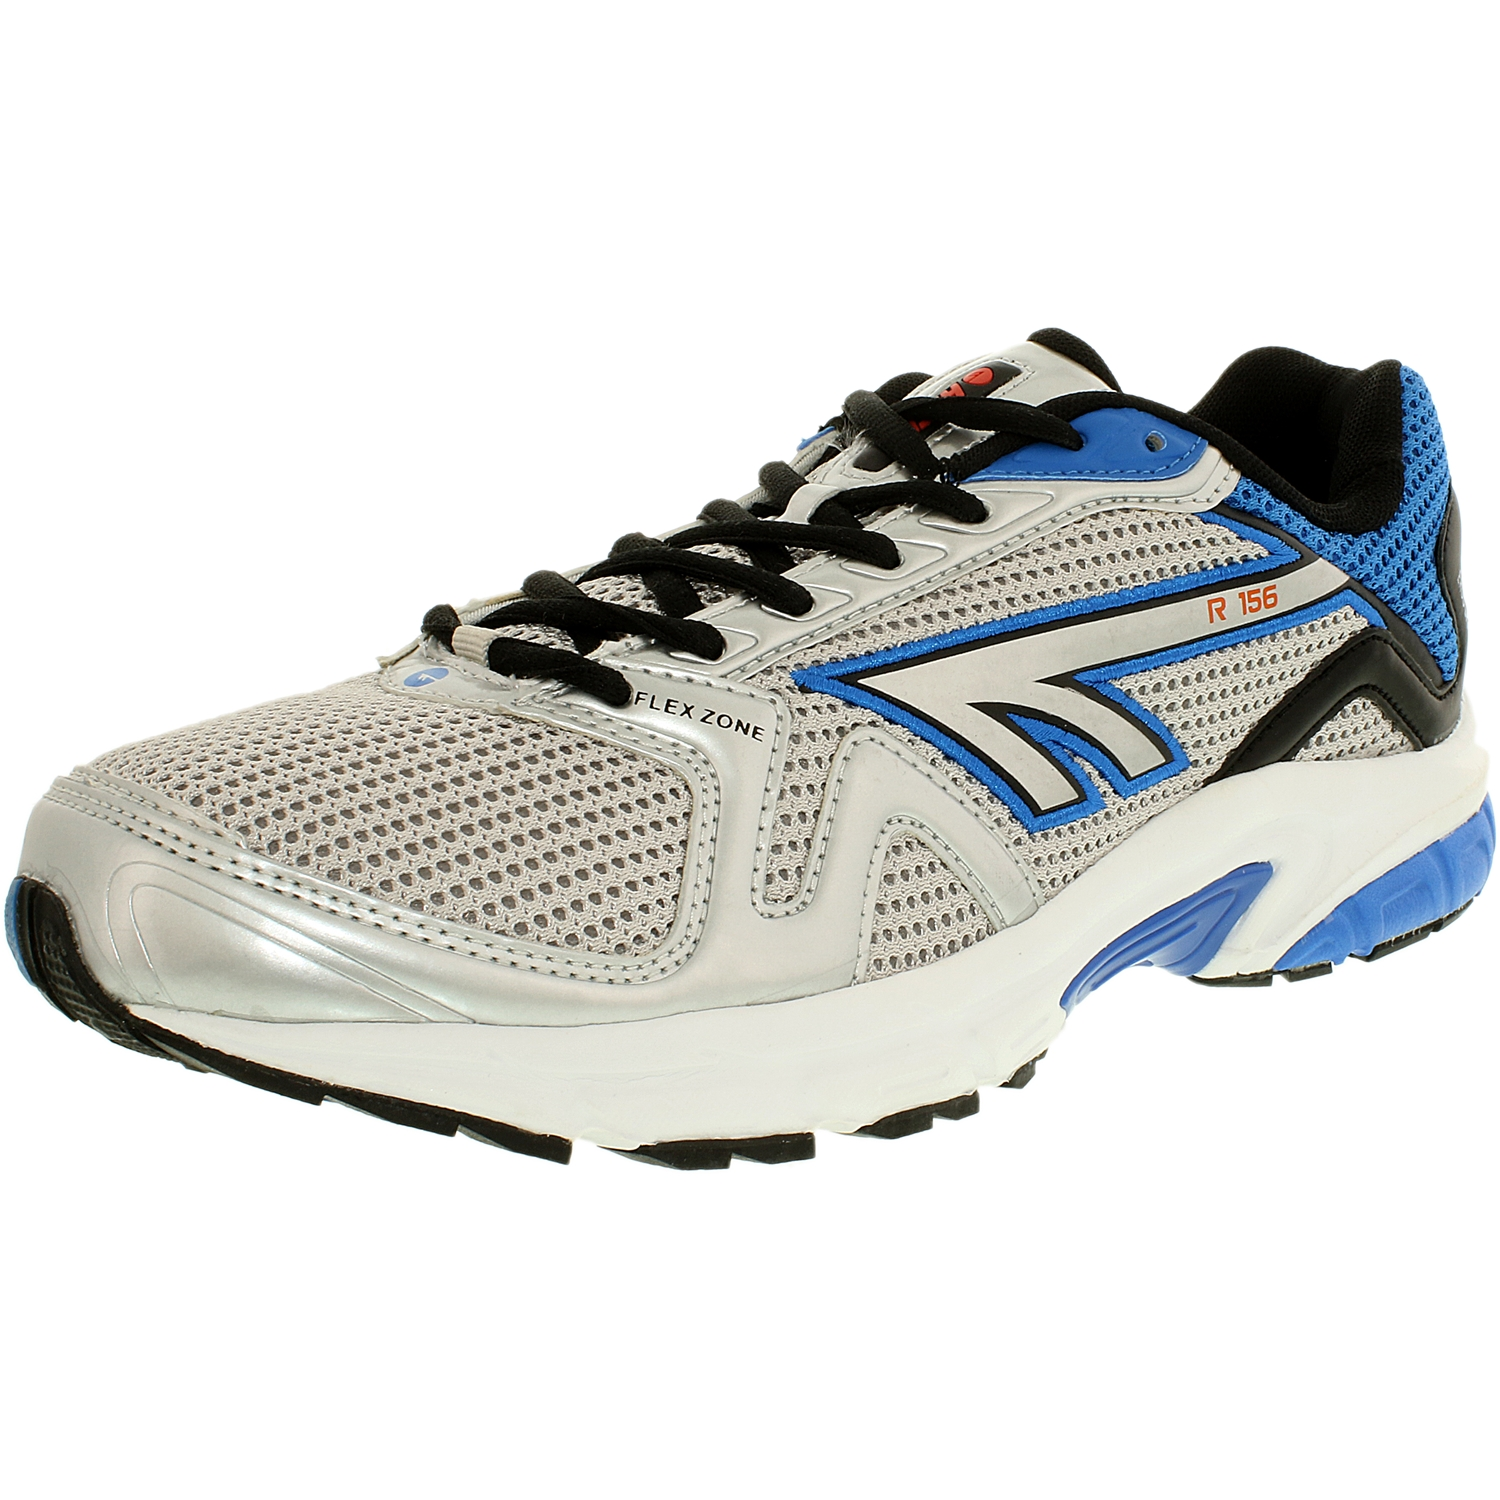 Hi-Tec Men's R156 White Silver Blue Ankle-High Running Shoe 12M by Hi-Tec